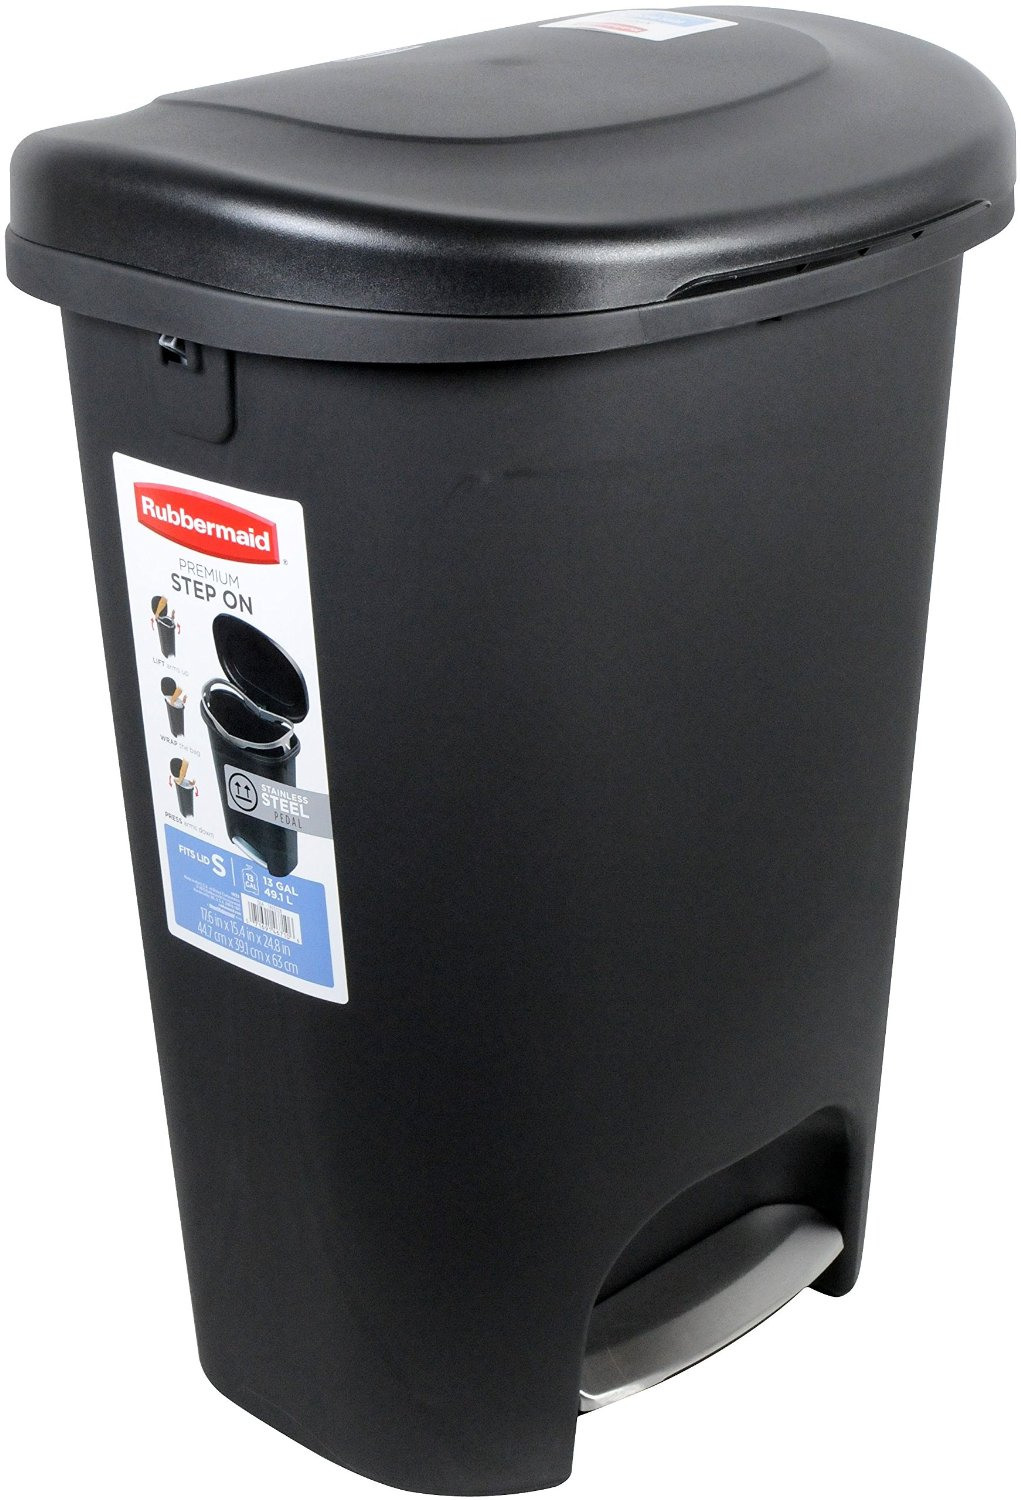 Rubbermaid Step-On Wastebasket Trash Can